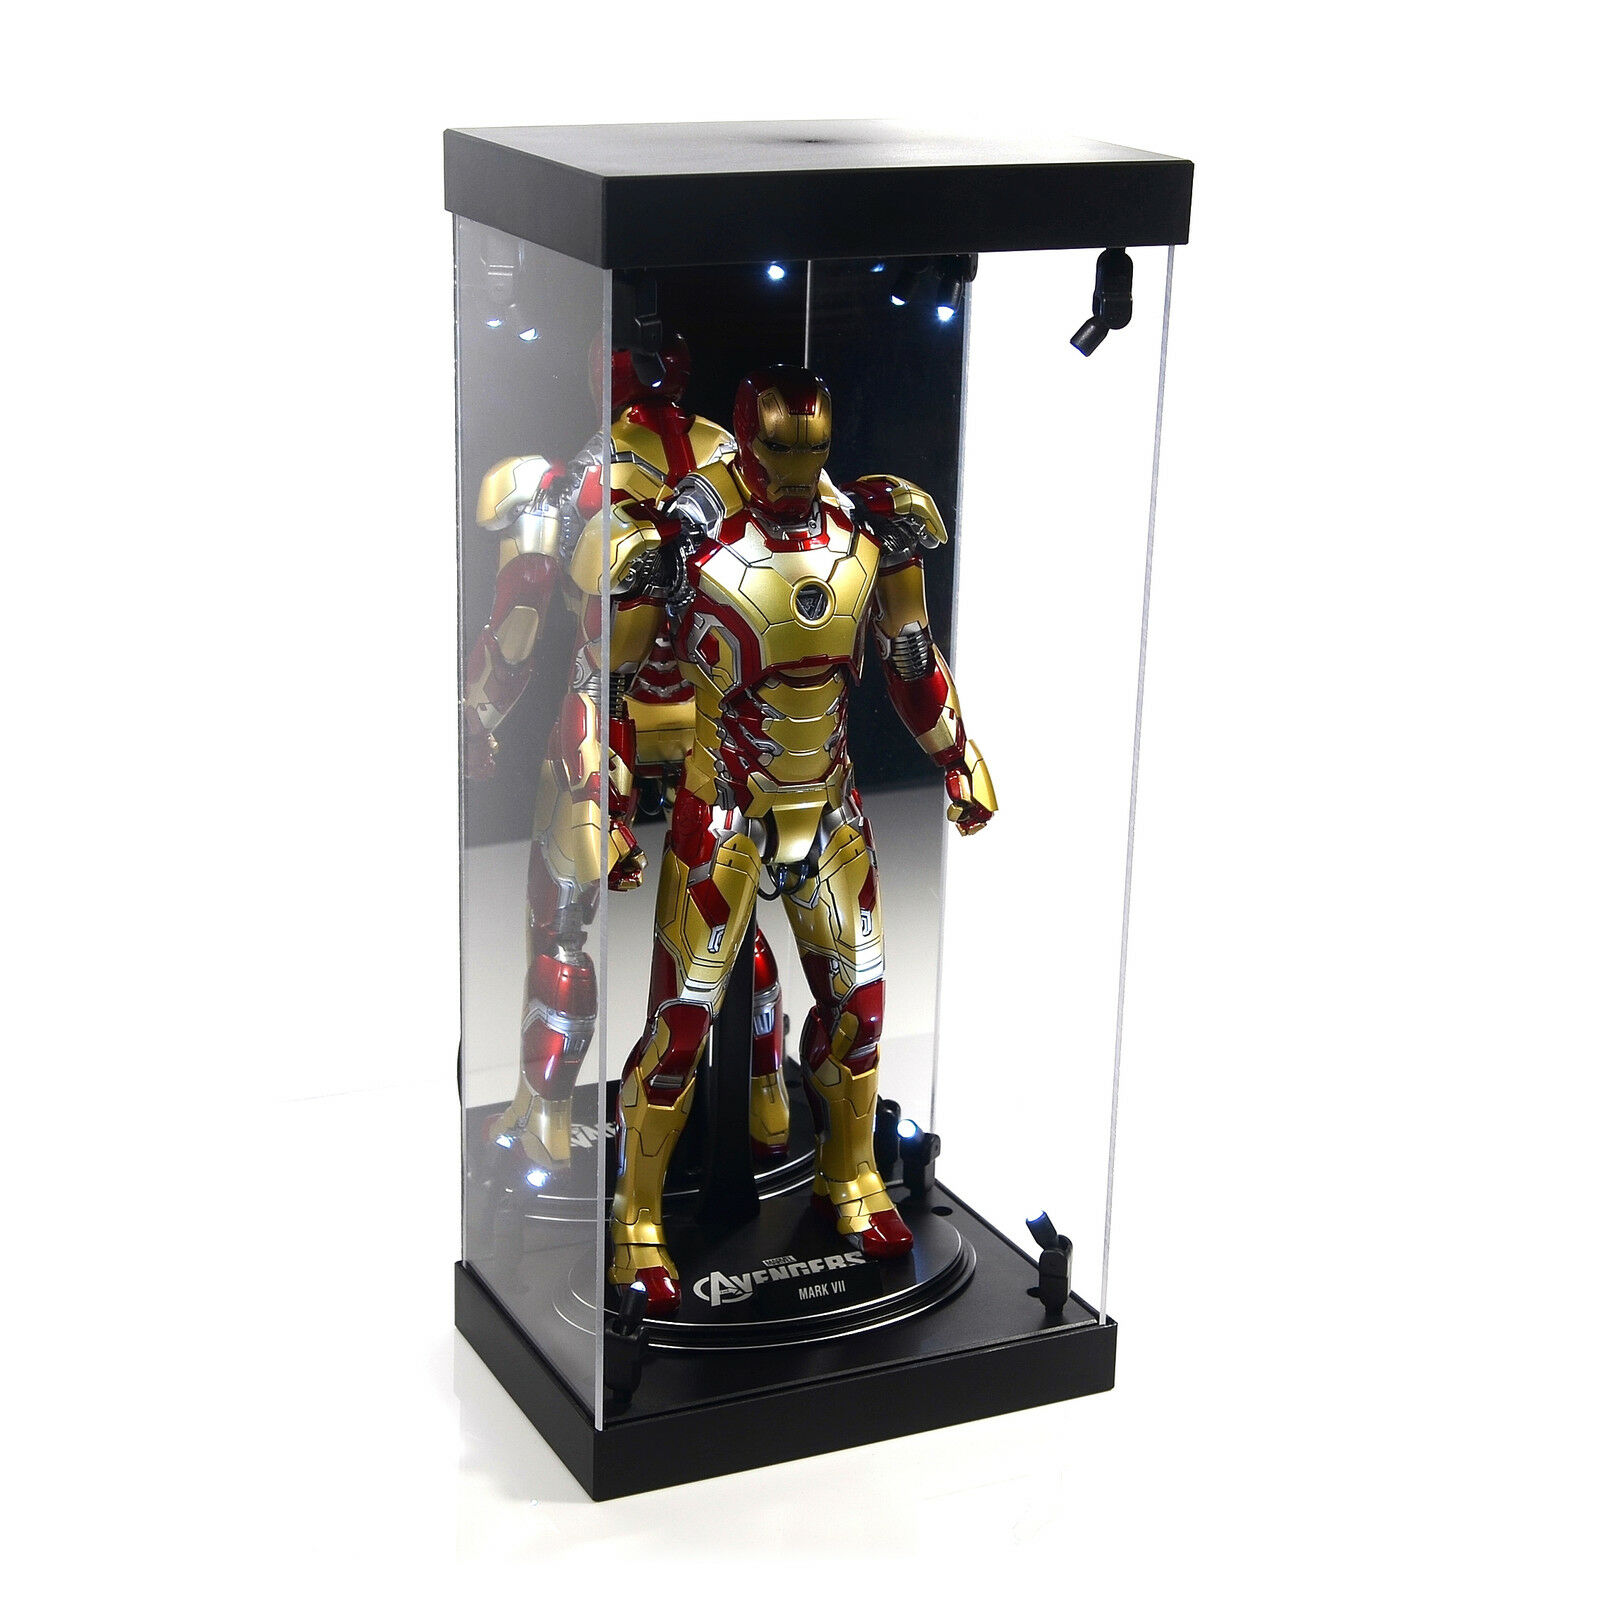 Acrylic Display Case LED lumière Box for  12  1 6th Scale The Flash Action Figure  mode